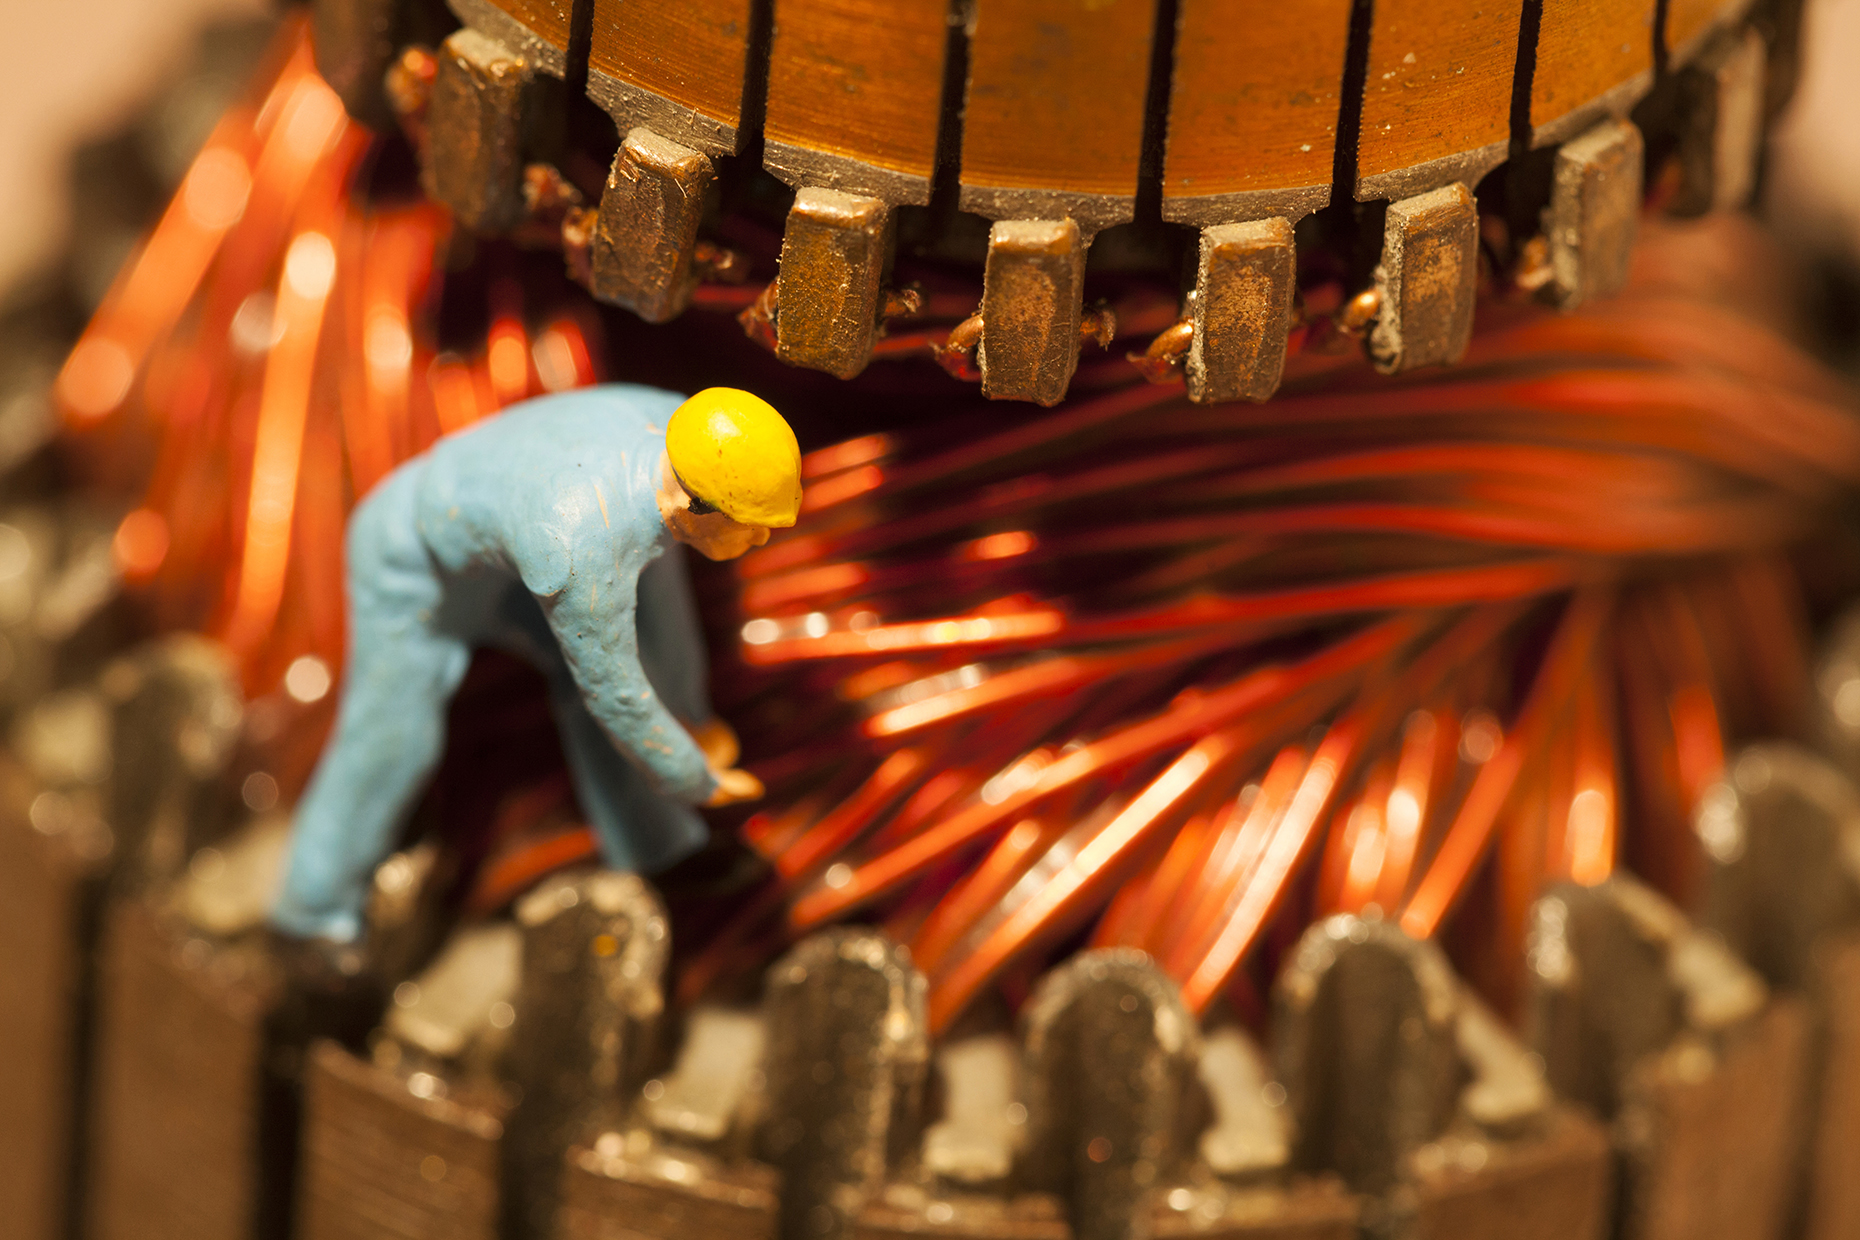 Worker inspecting large electrical mechanical part